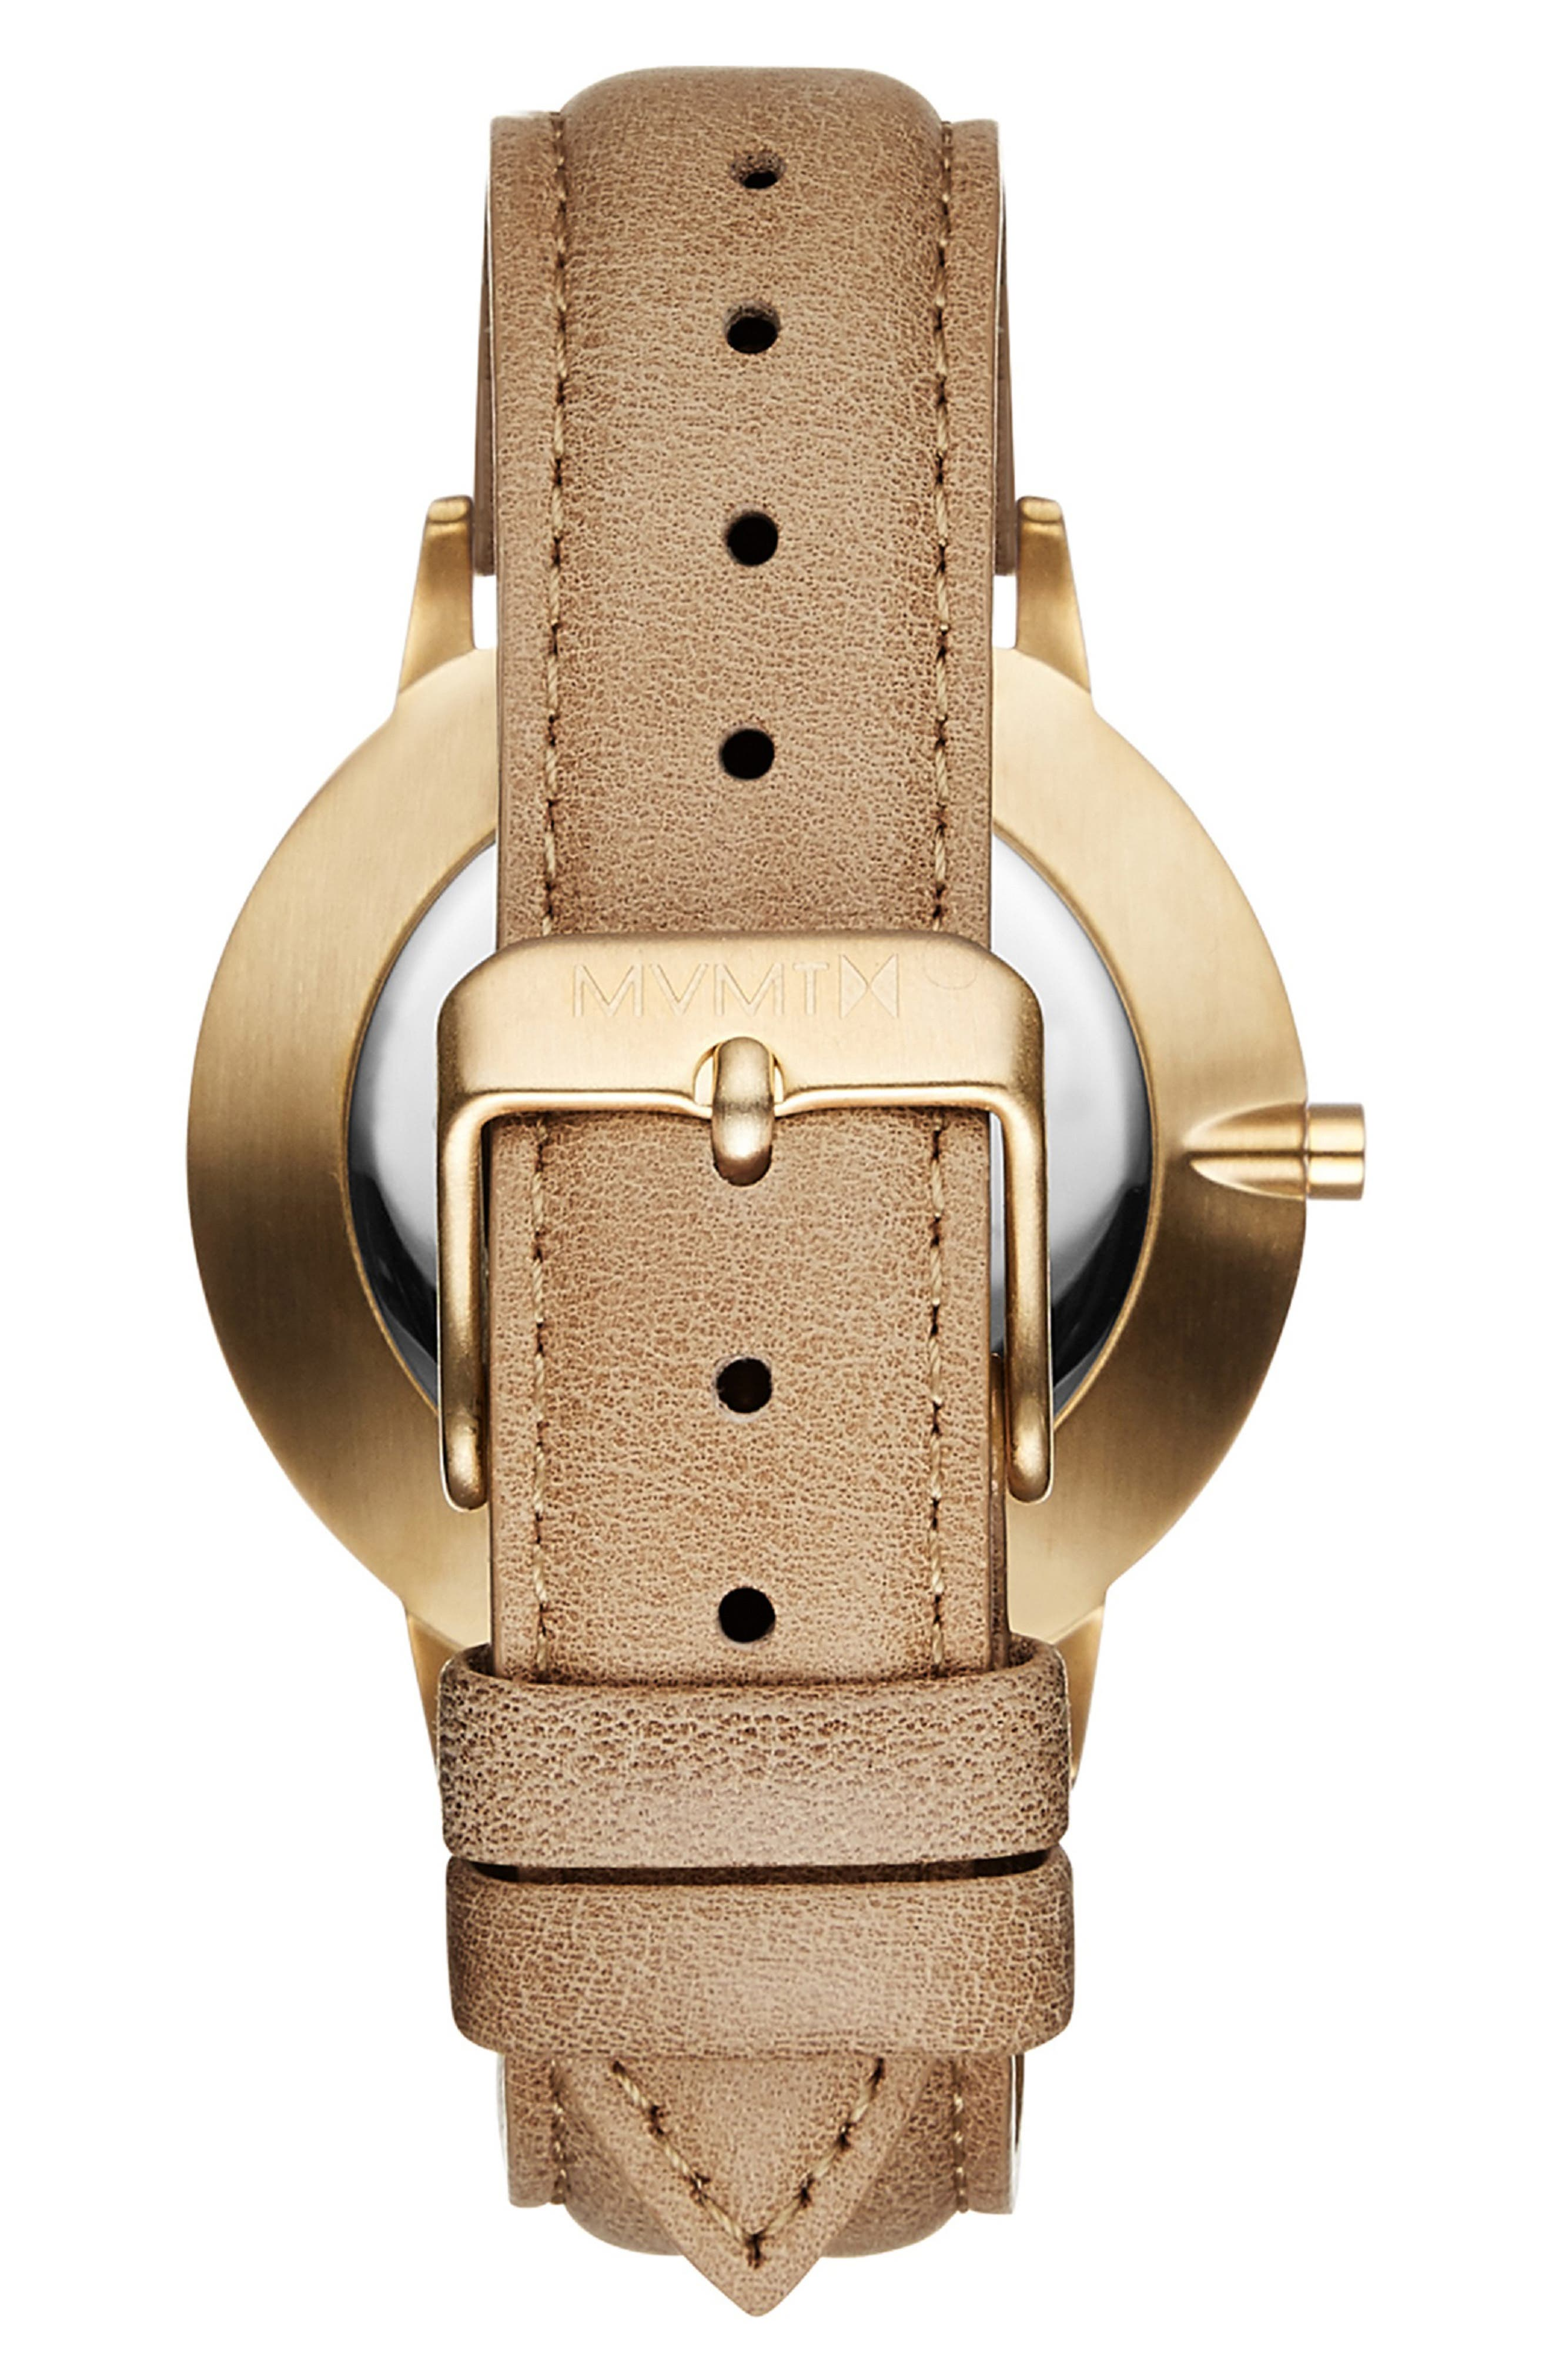 MVMT, Boulevard Leather Strap Watch, 38mm, Alternate thumbnail 3, color, CARAMEL/ WHITE MARBLE/ GOLD